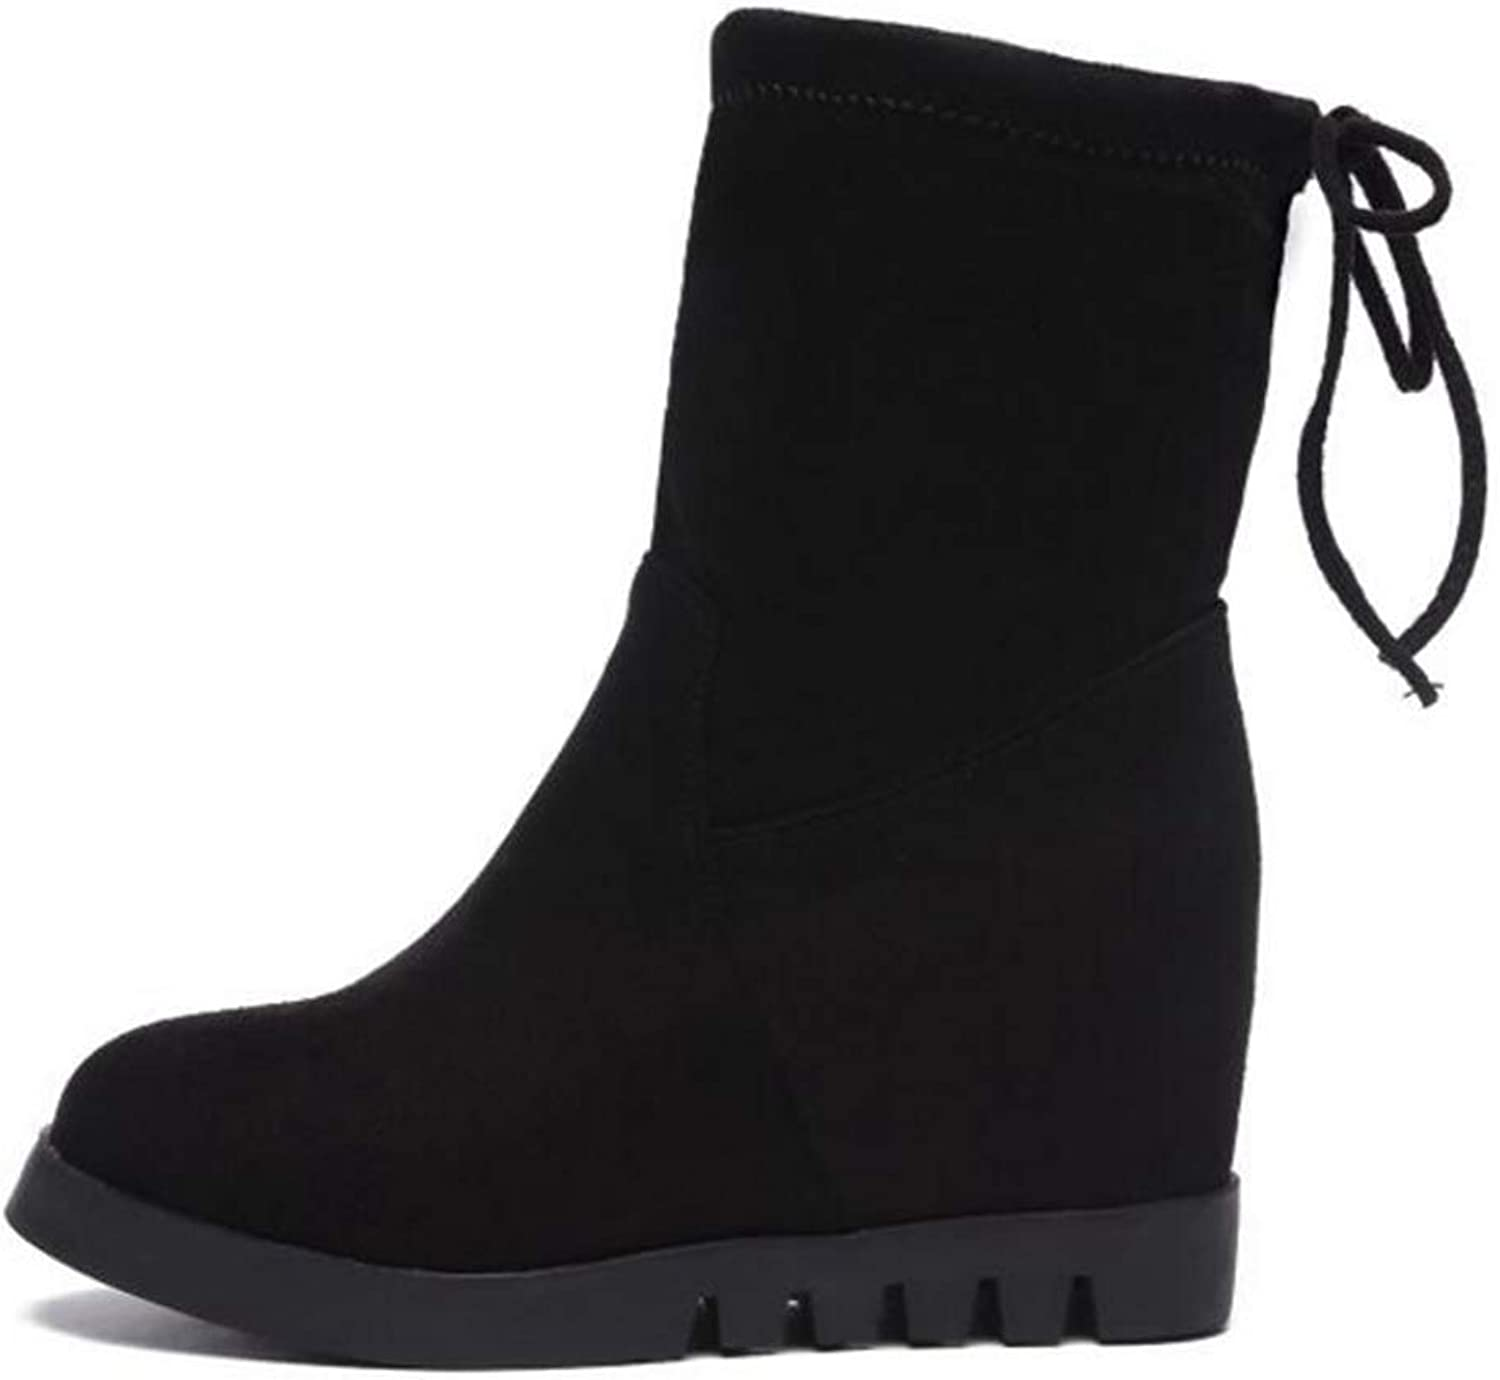 LVYING Winter Mid Calf Booties Women Round Toe Slip-On Butterfly-Knot Height Increasing Warm Boots